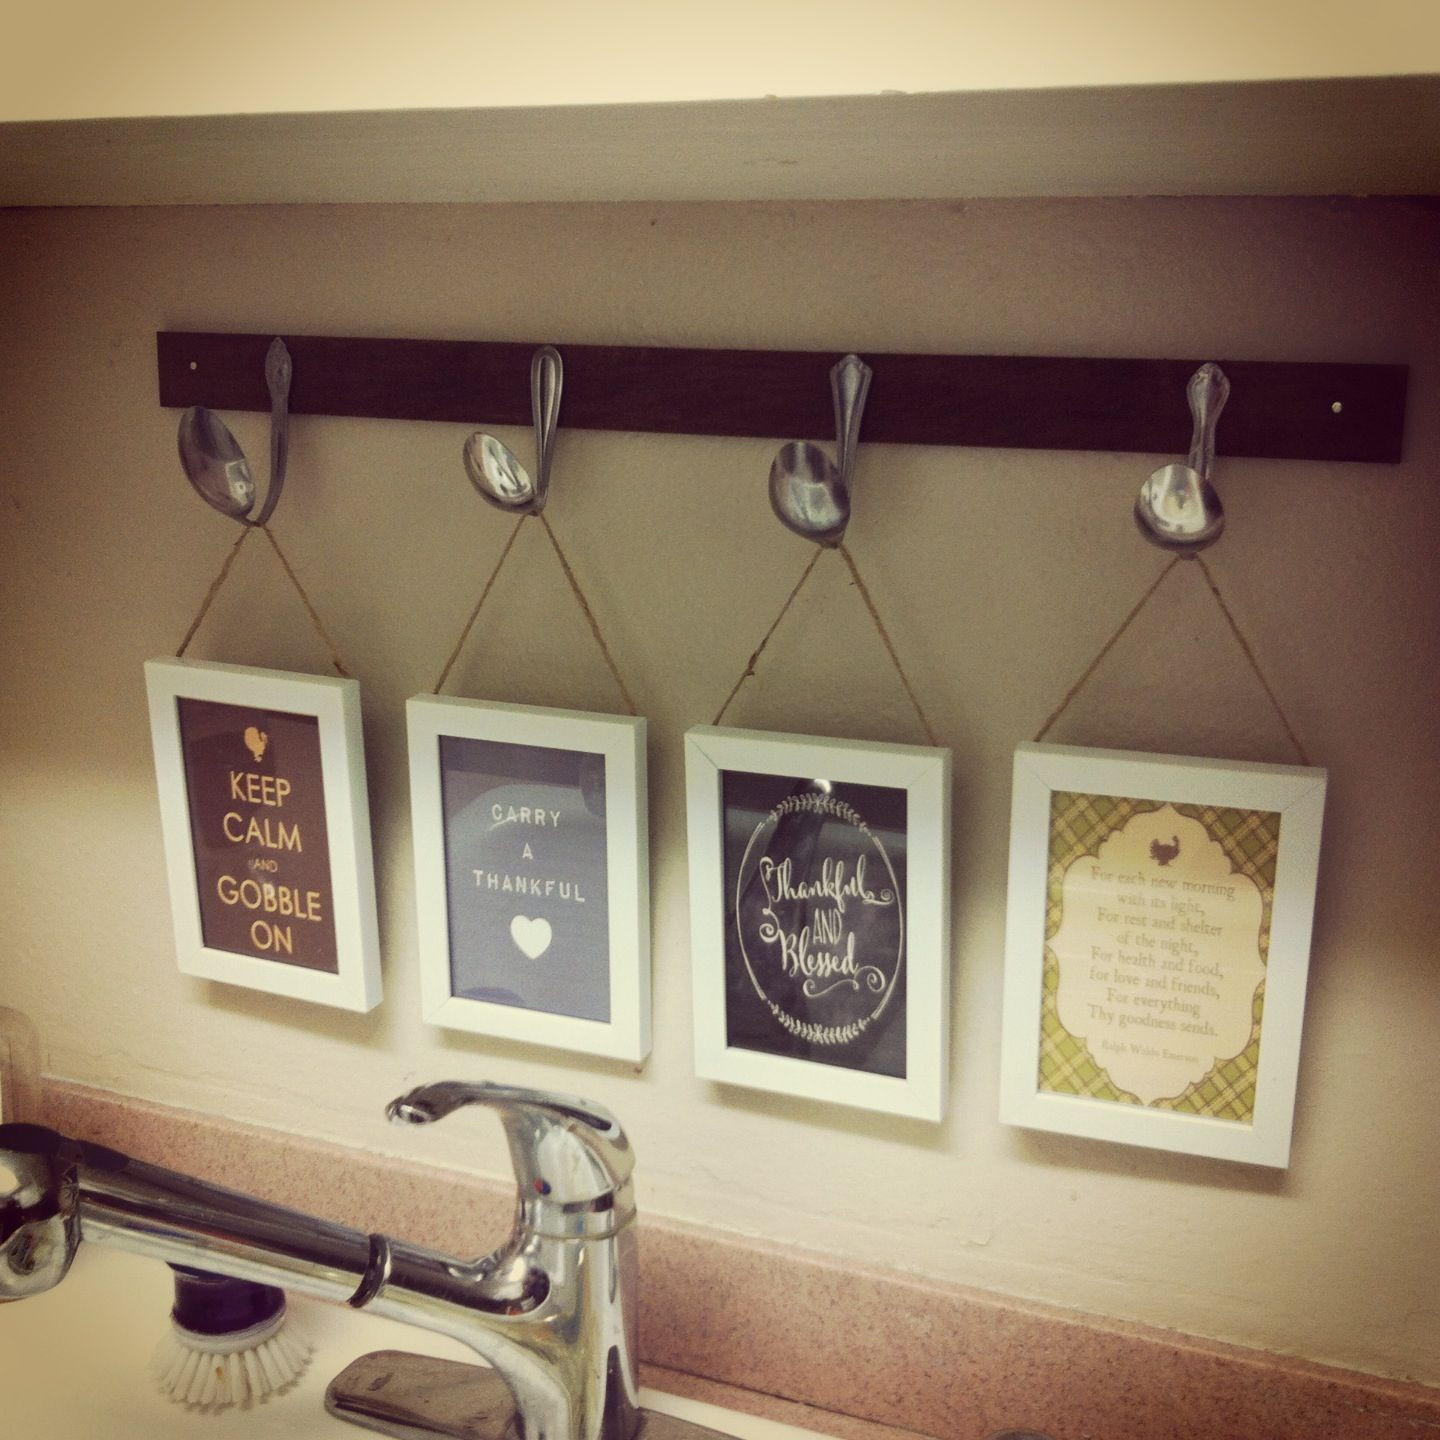 Best ideas about Kitchen Decor Store . Save or Pin Best 25 Tar home decor ideas on Pinterest Now.